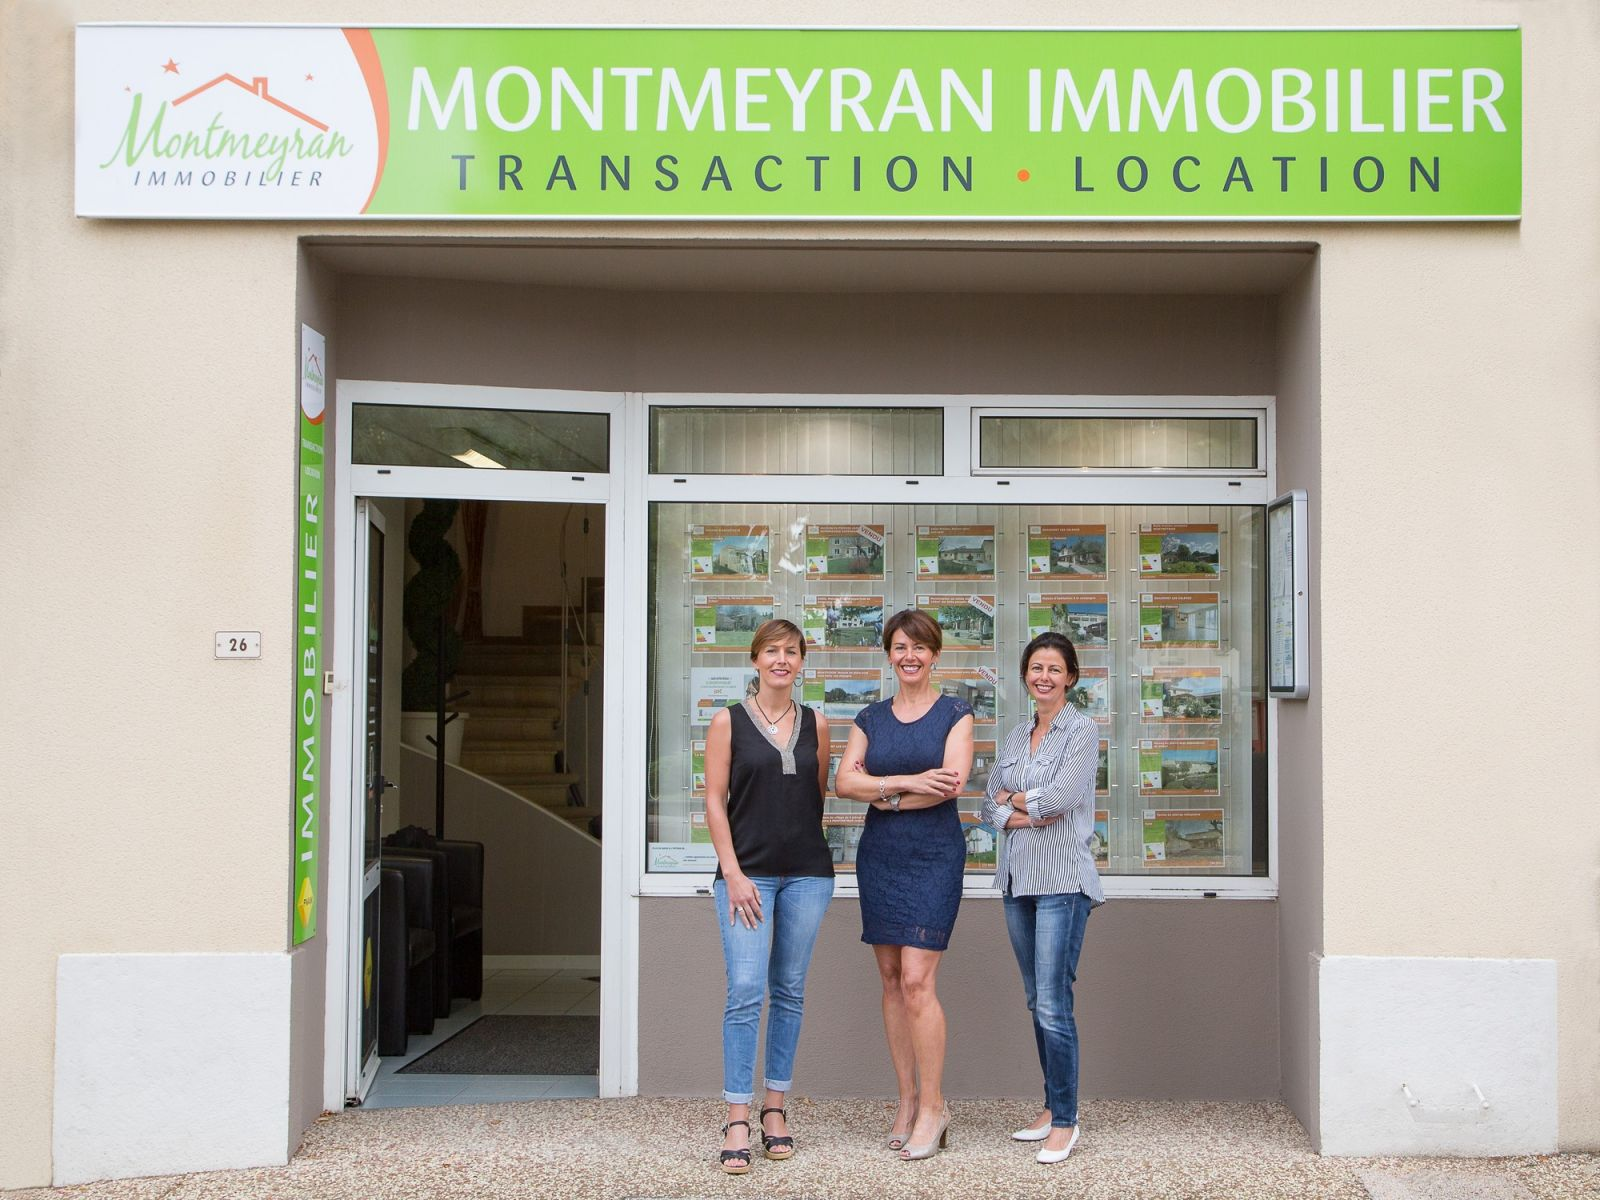 Agence Montmeyran Immobilier Immobilier Montmeyran 26